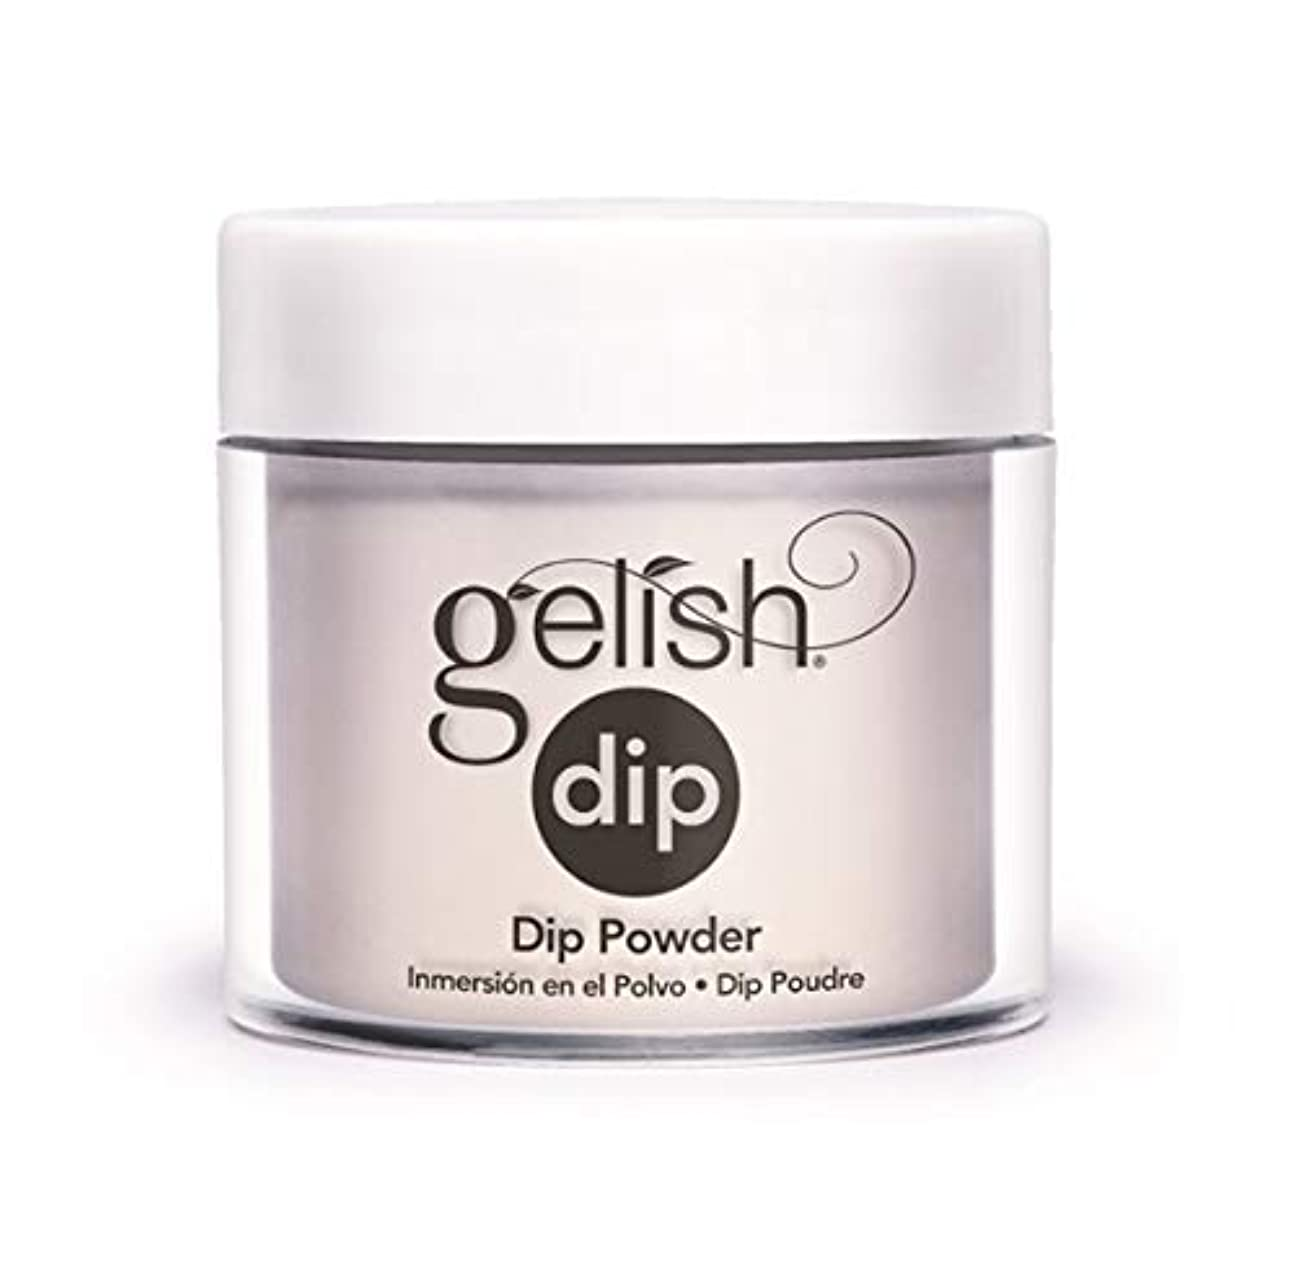 Harmony Gelish - Dip Powder - Forever Marilyn Fall 2019 Collection - All American Beauty - 23g / 0.8oz